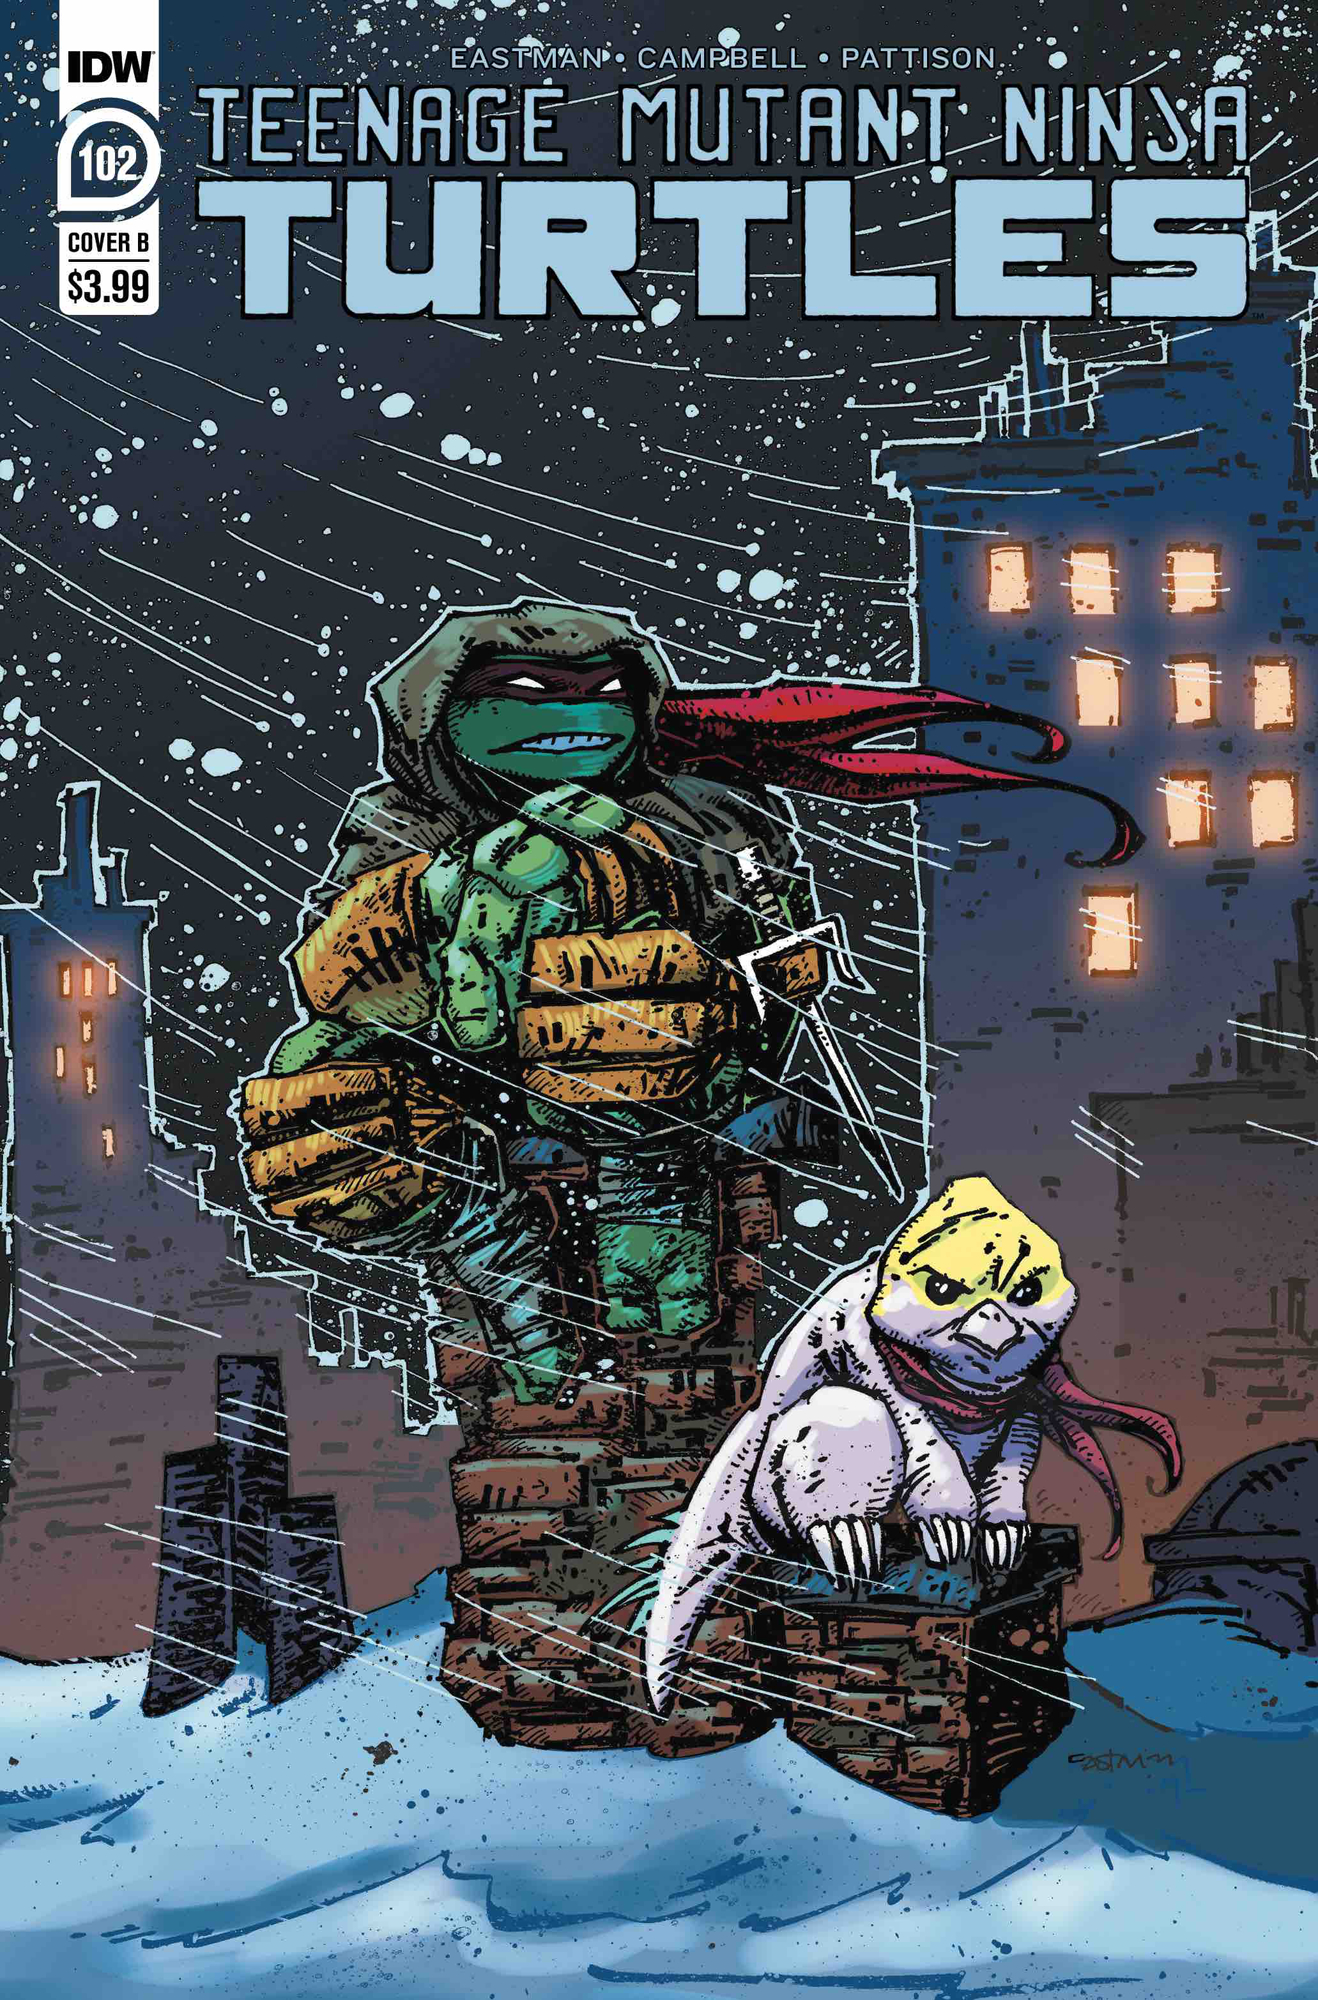 TMNT ONGOING #102 CVR B EASTMAN